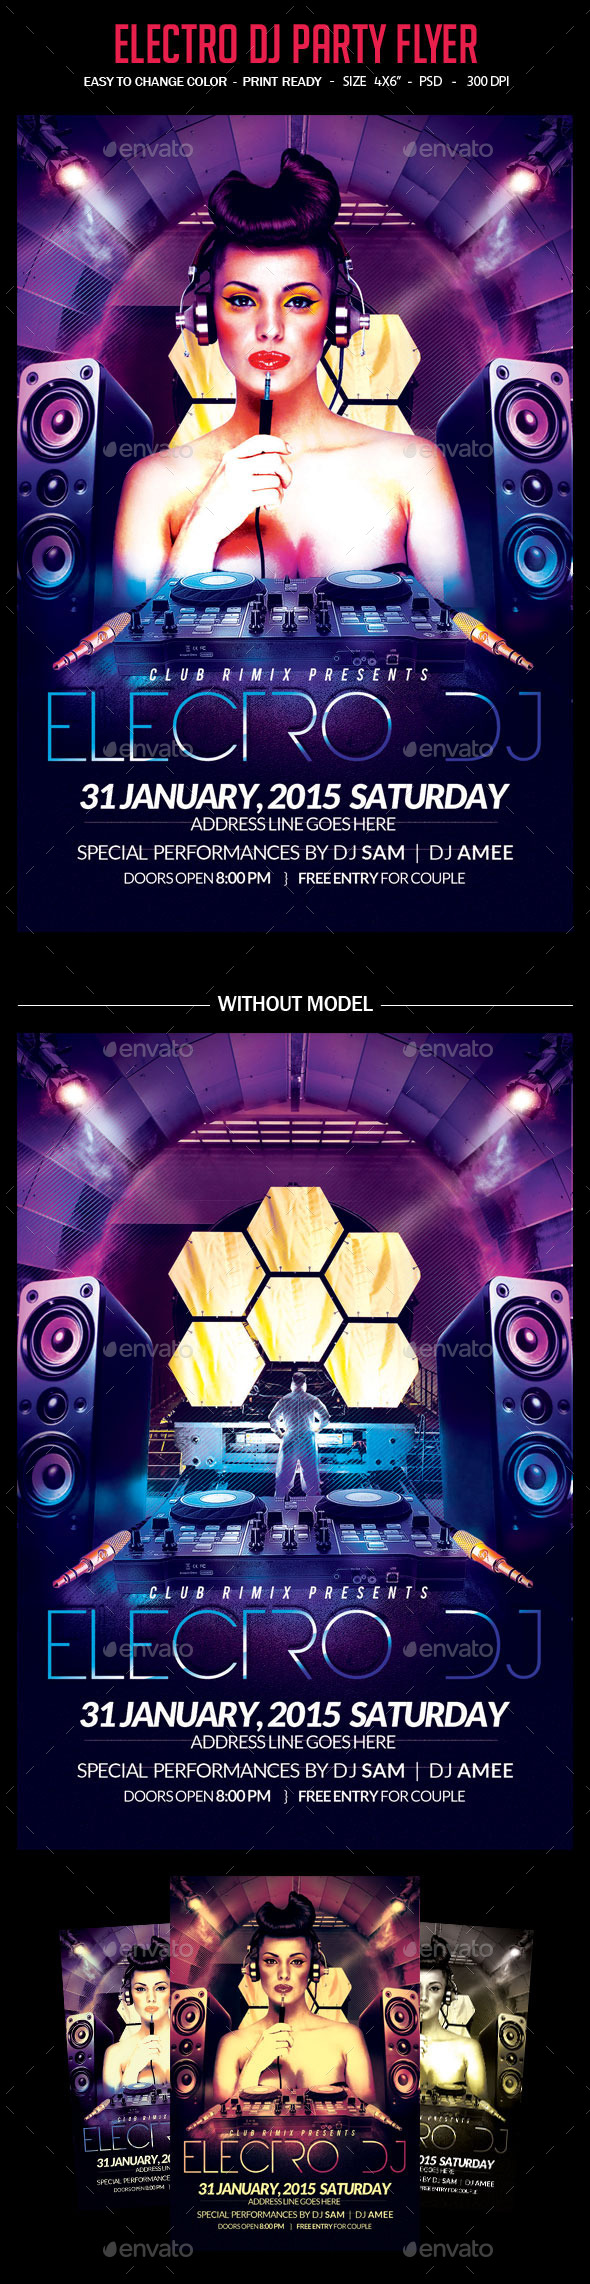 GraphicRiver Electro Dj Party Flyer 10265510